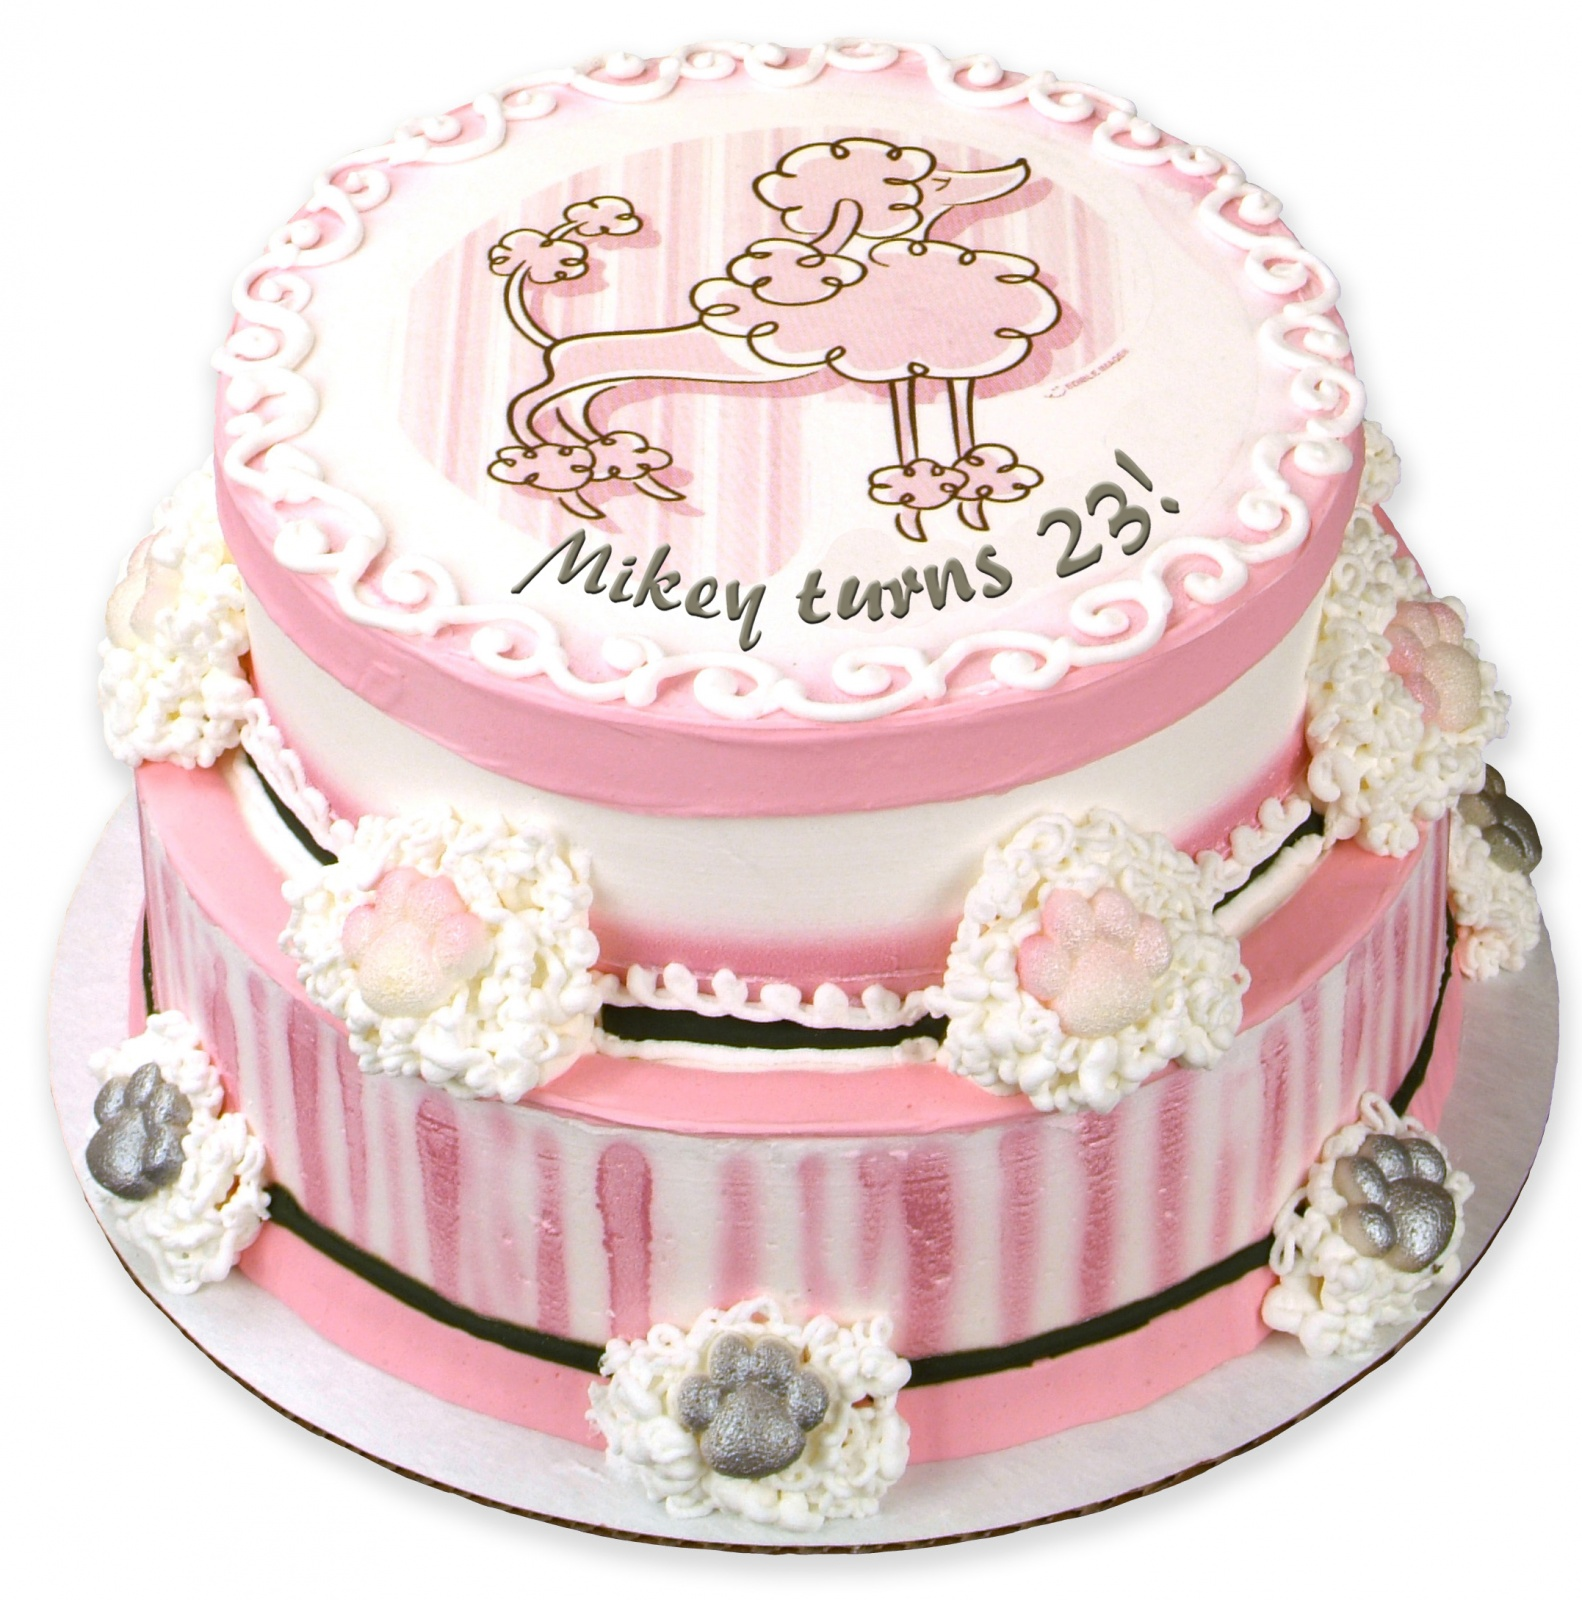 Click image for larger version  Name:birthday.jpg Views:145 Size:563.0 KB ID:1225